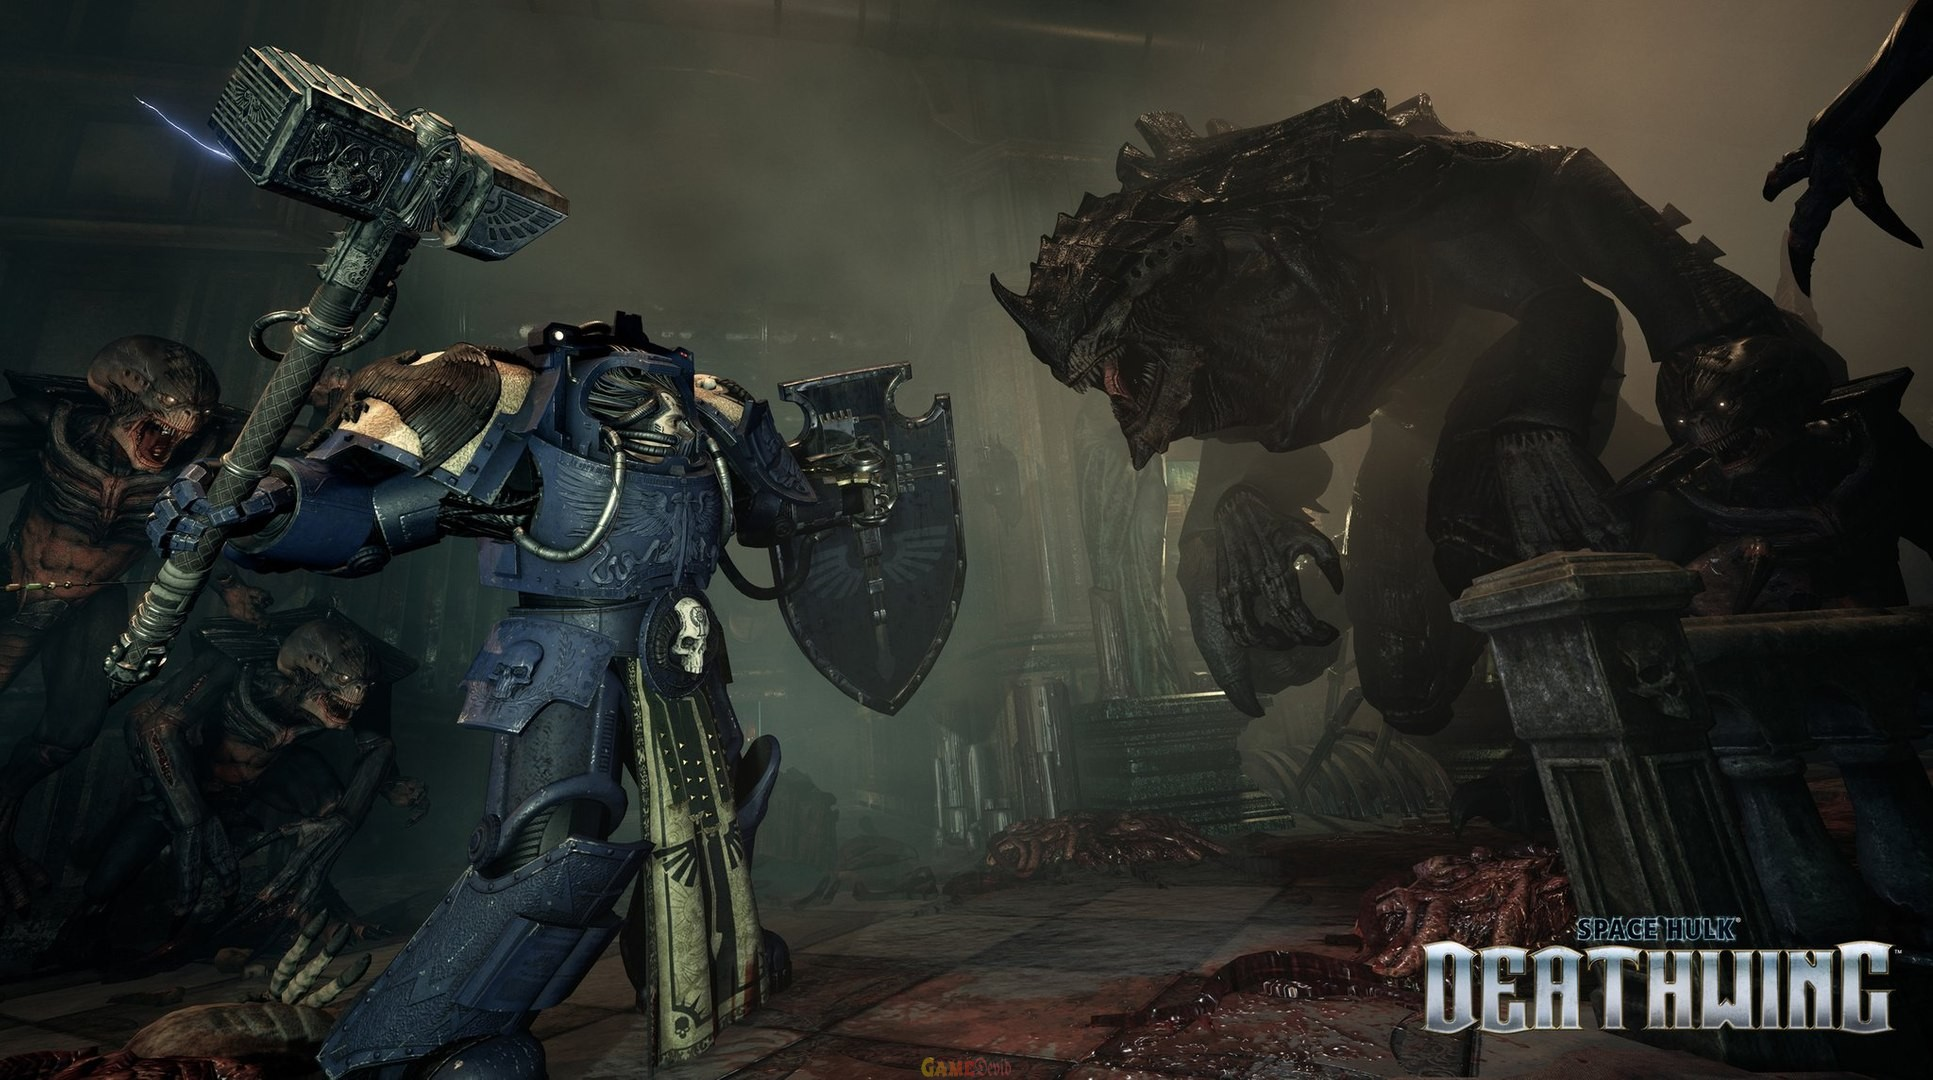 Space Hulk Deathwing Mobile Android Game APK Download